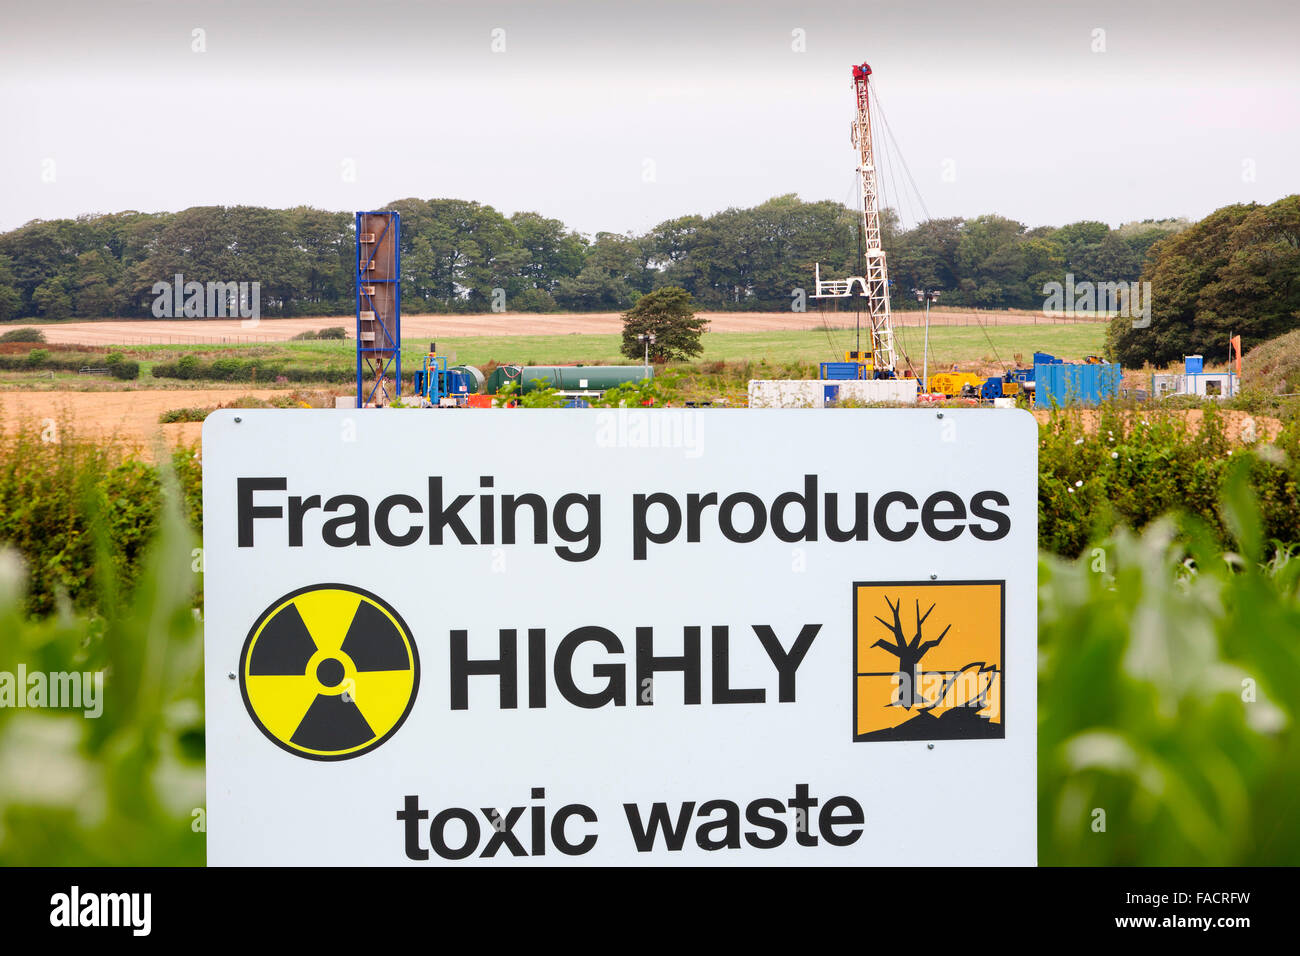 A test drilling site for shale gas at Preese Hall Farm near Blackpool, Lancashire, UK. The gas is contained within - Stock Image